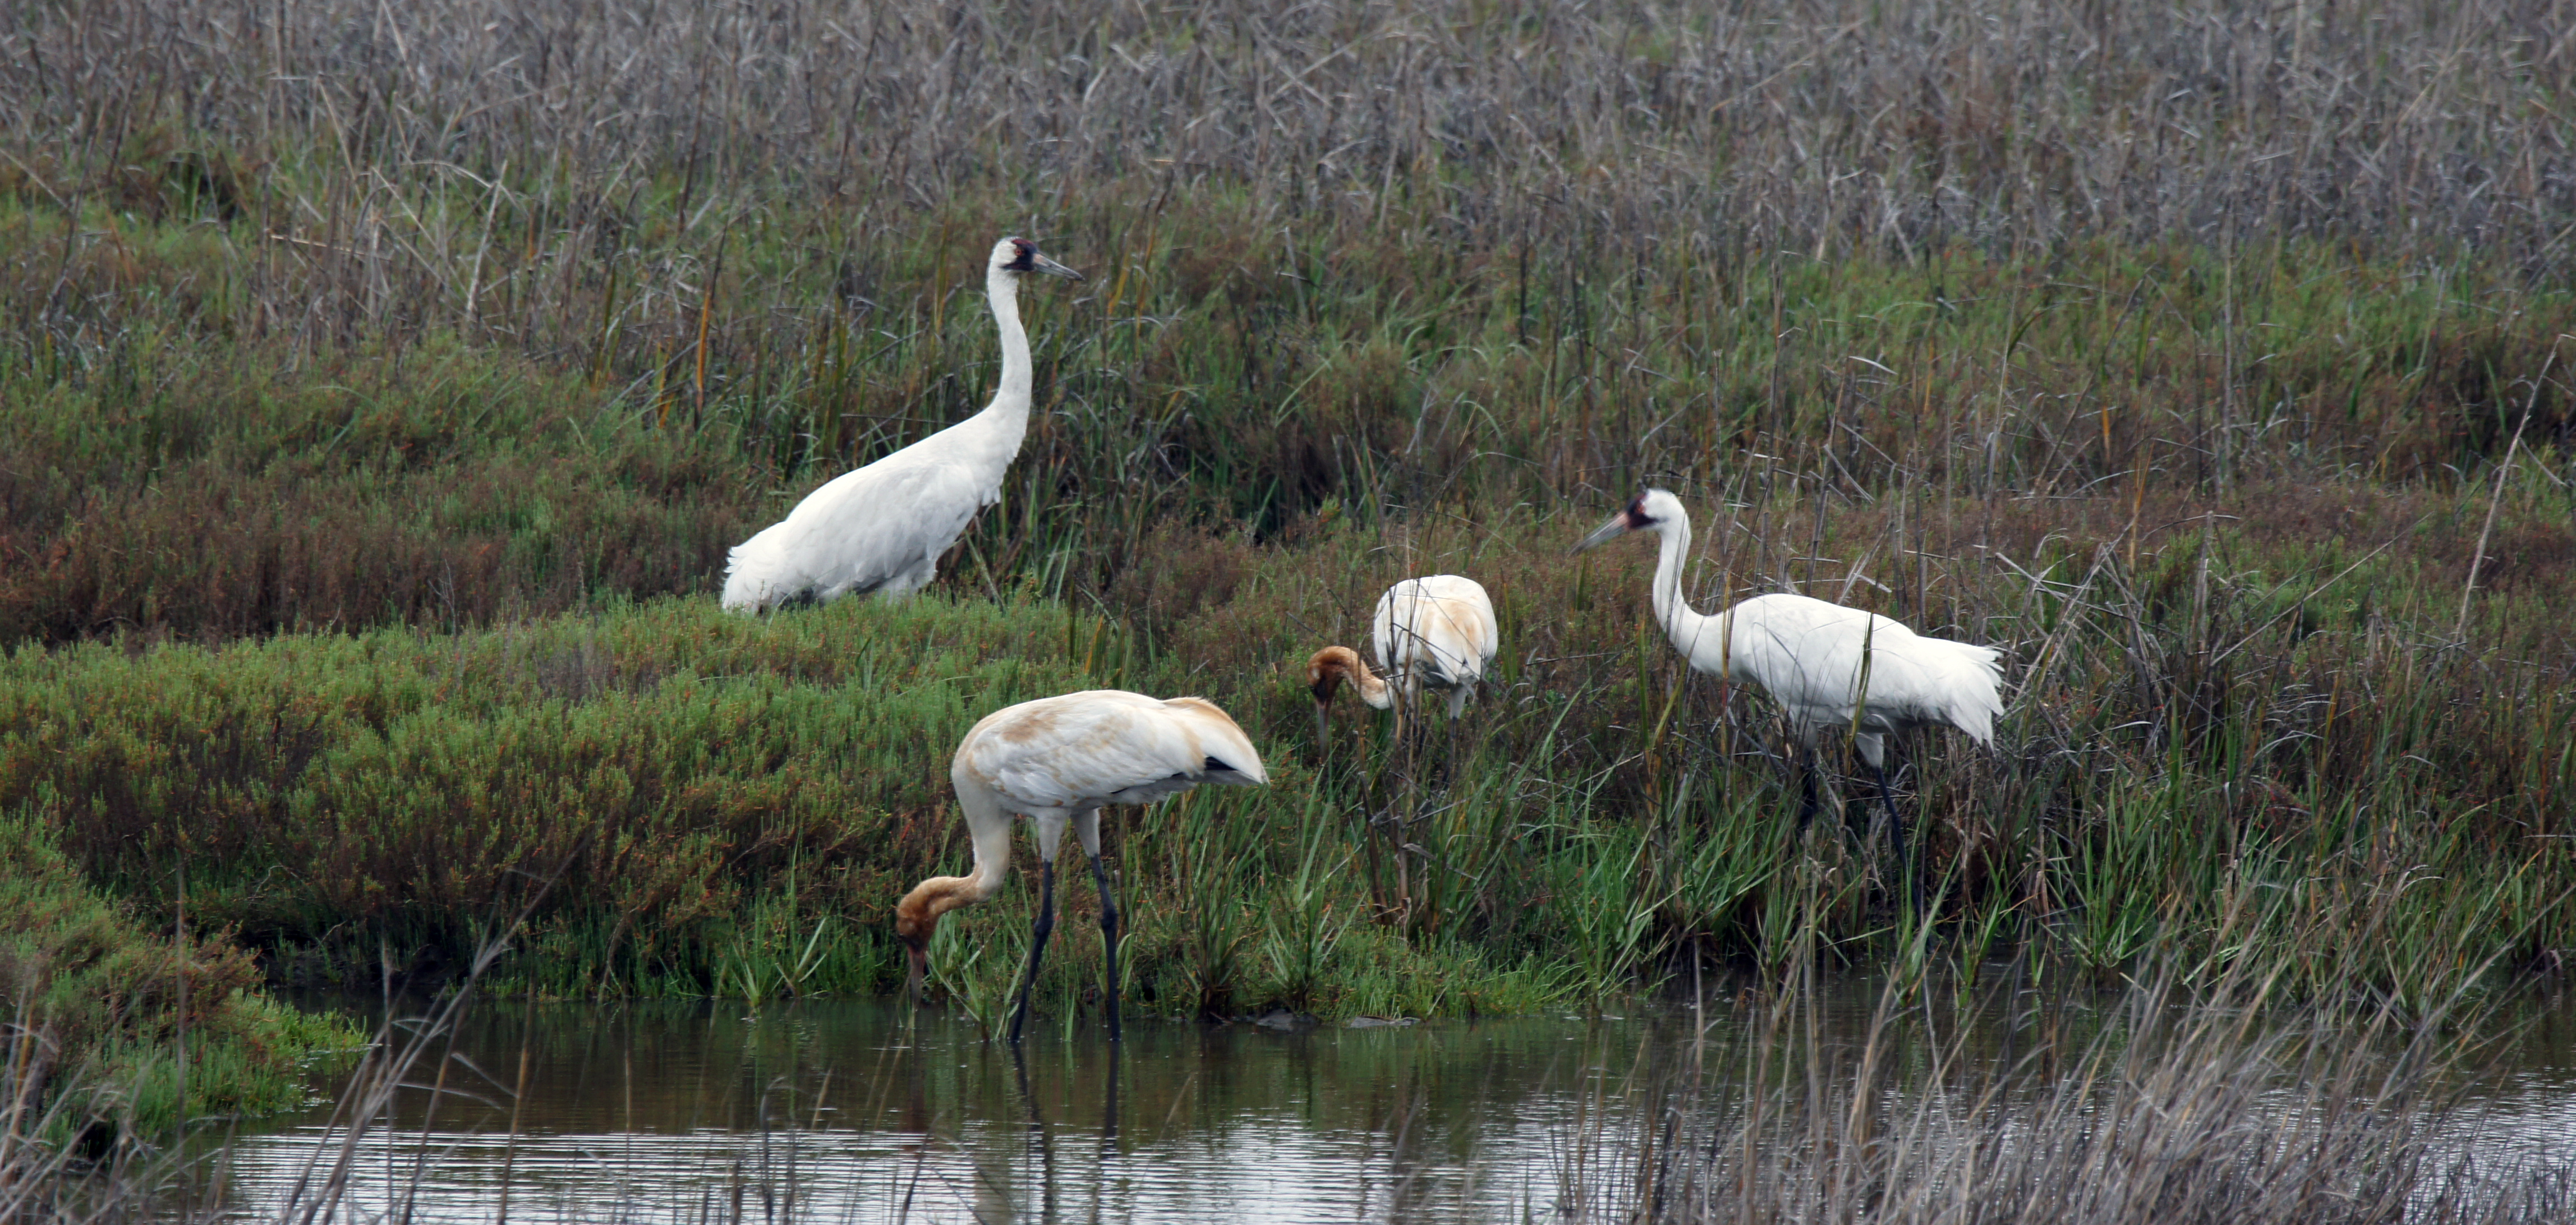 Four whooping cranes along the San Antonio River